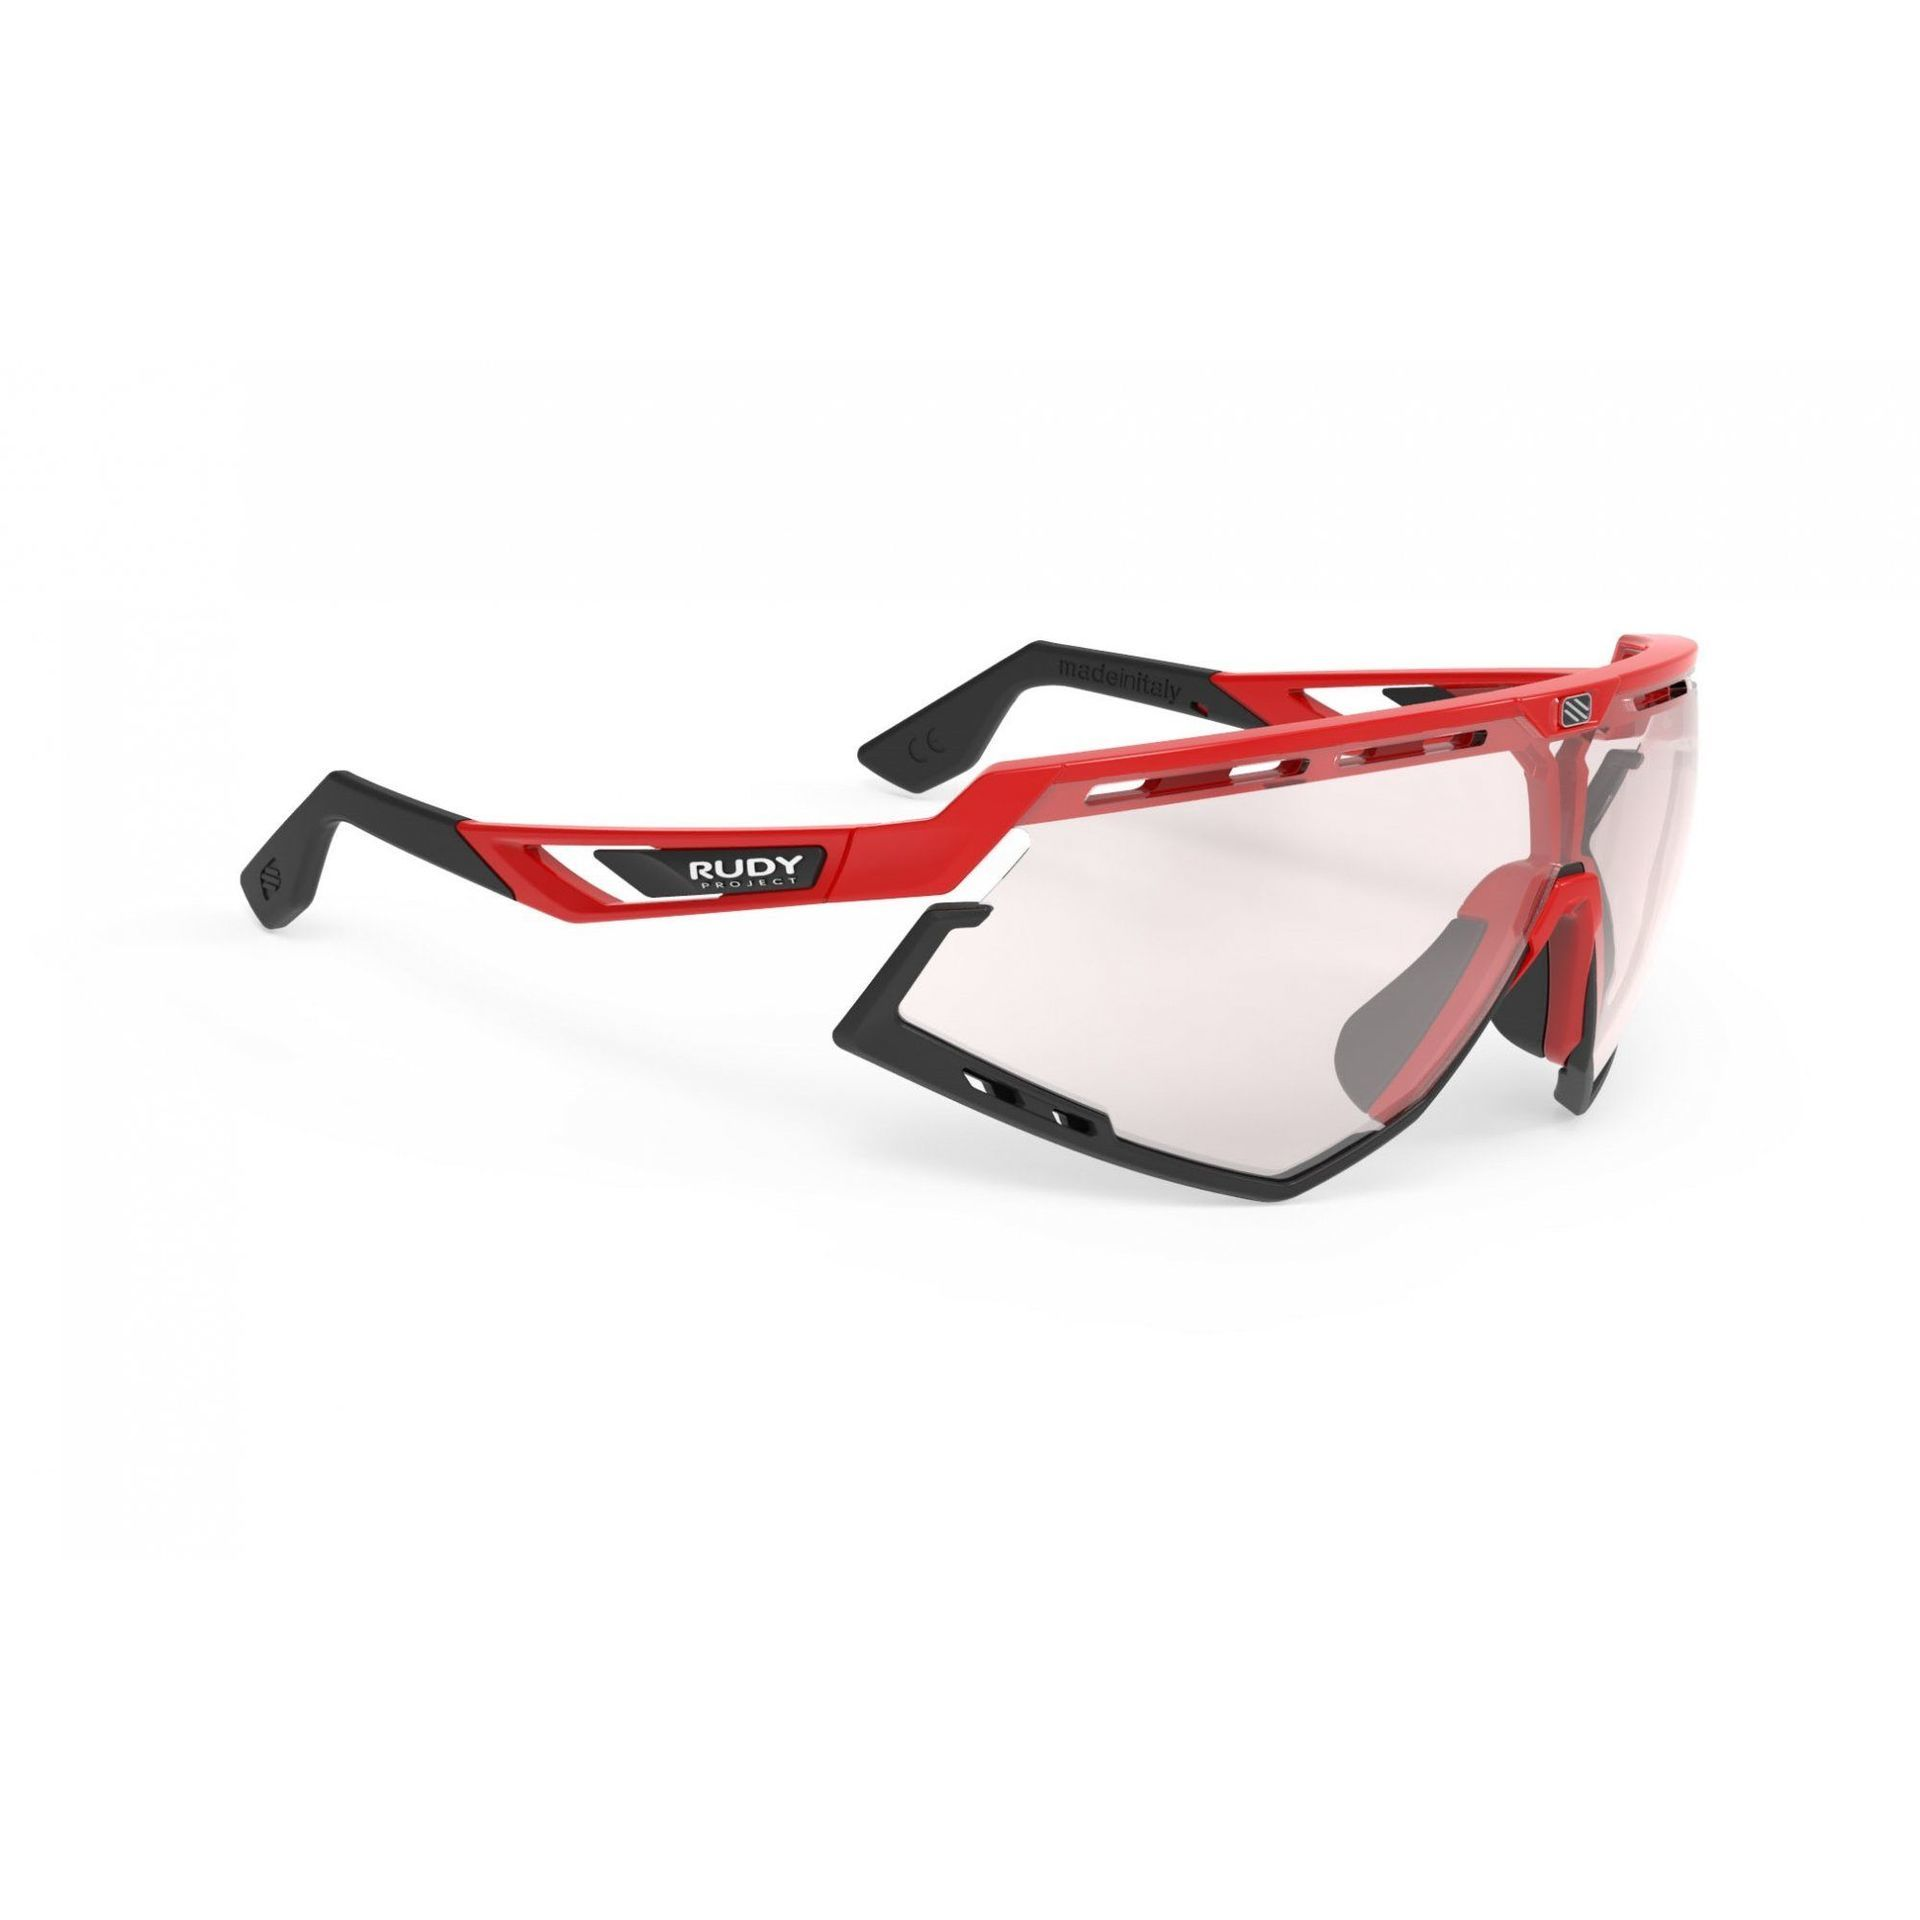 OKULARY RUDY PROJECT DEFENDER FIRE RED BLACK + IMPACTX PHOTOCHROMIC 2LASERRED SP528945 1